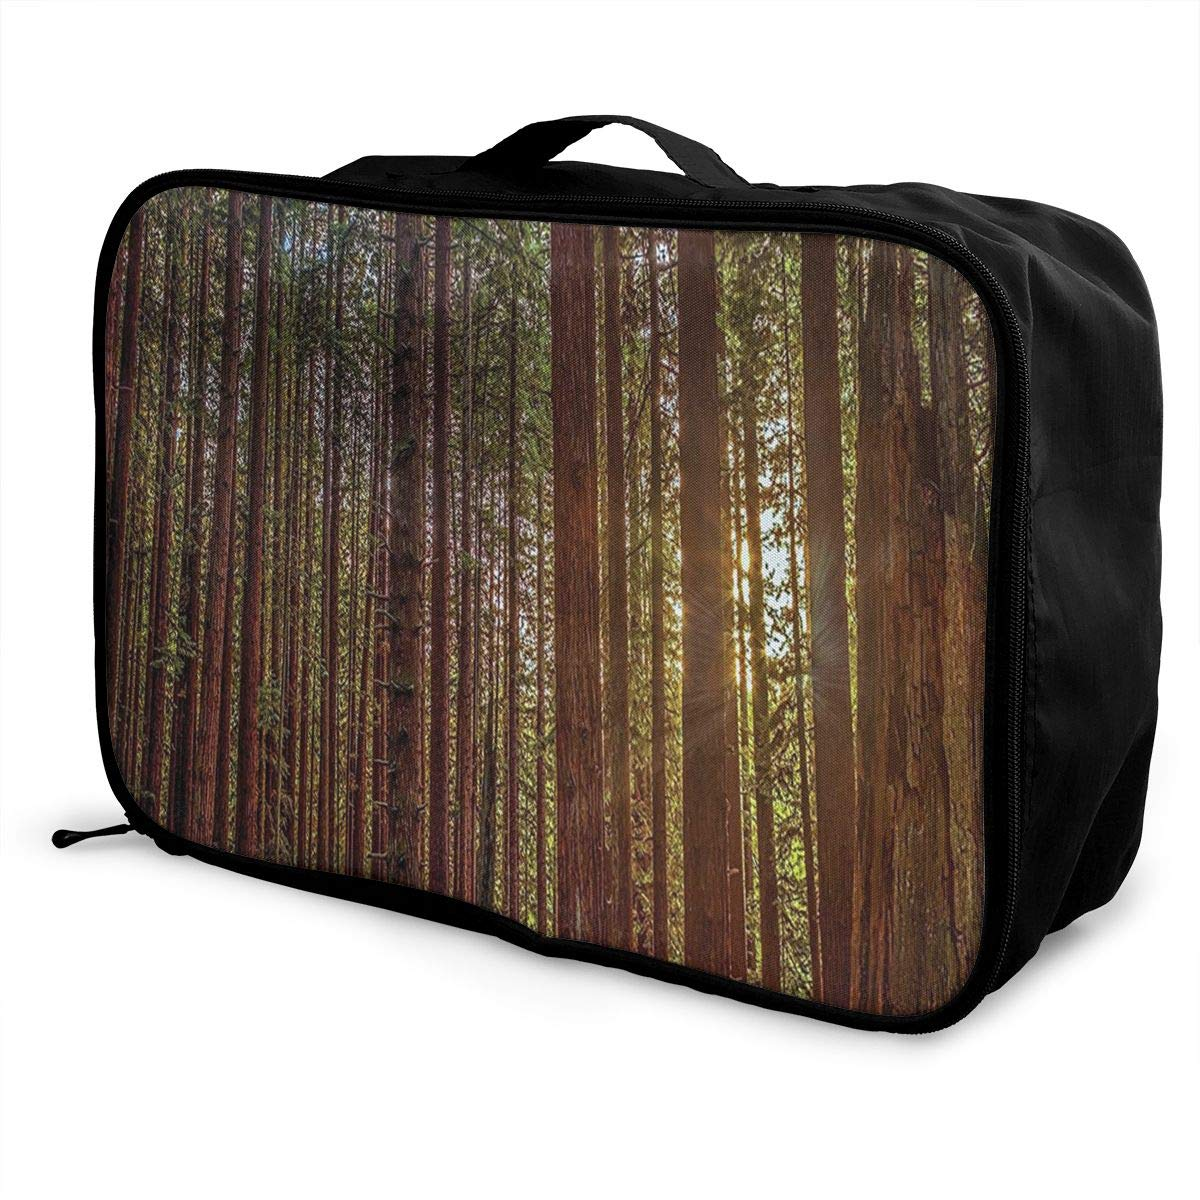 Nature Redwood Forest In California Travel Fashion Lightweight Large Capacity Duffel Portable Waterproof Foldable Storage Carry Luggage Tote Bag